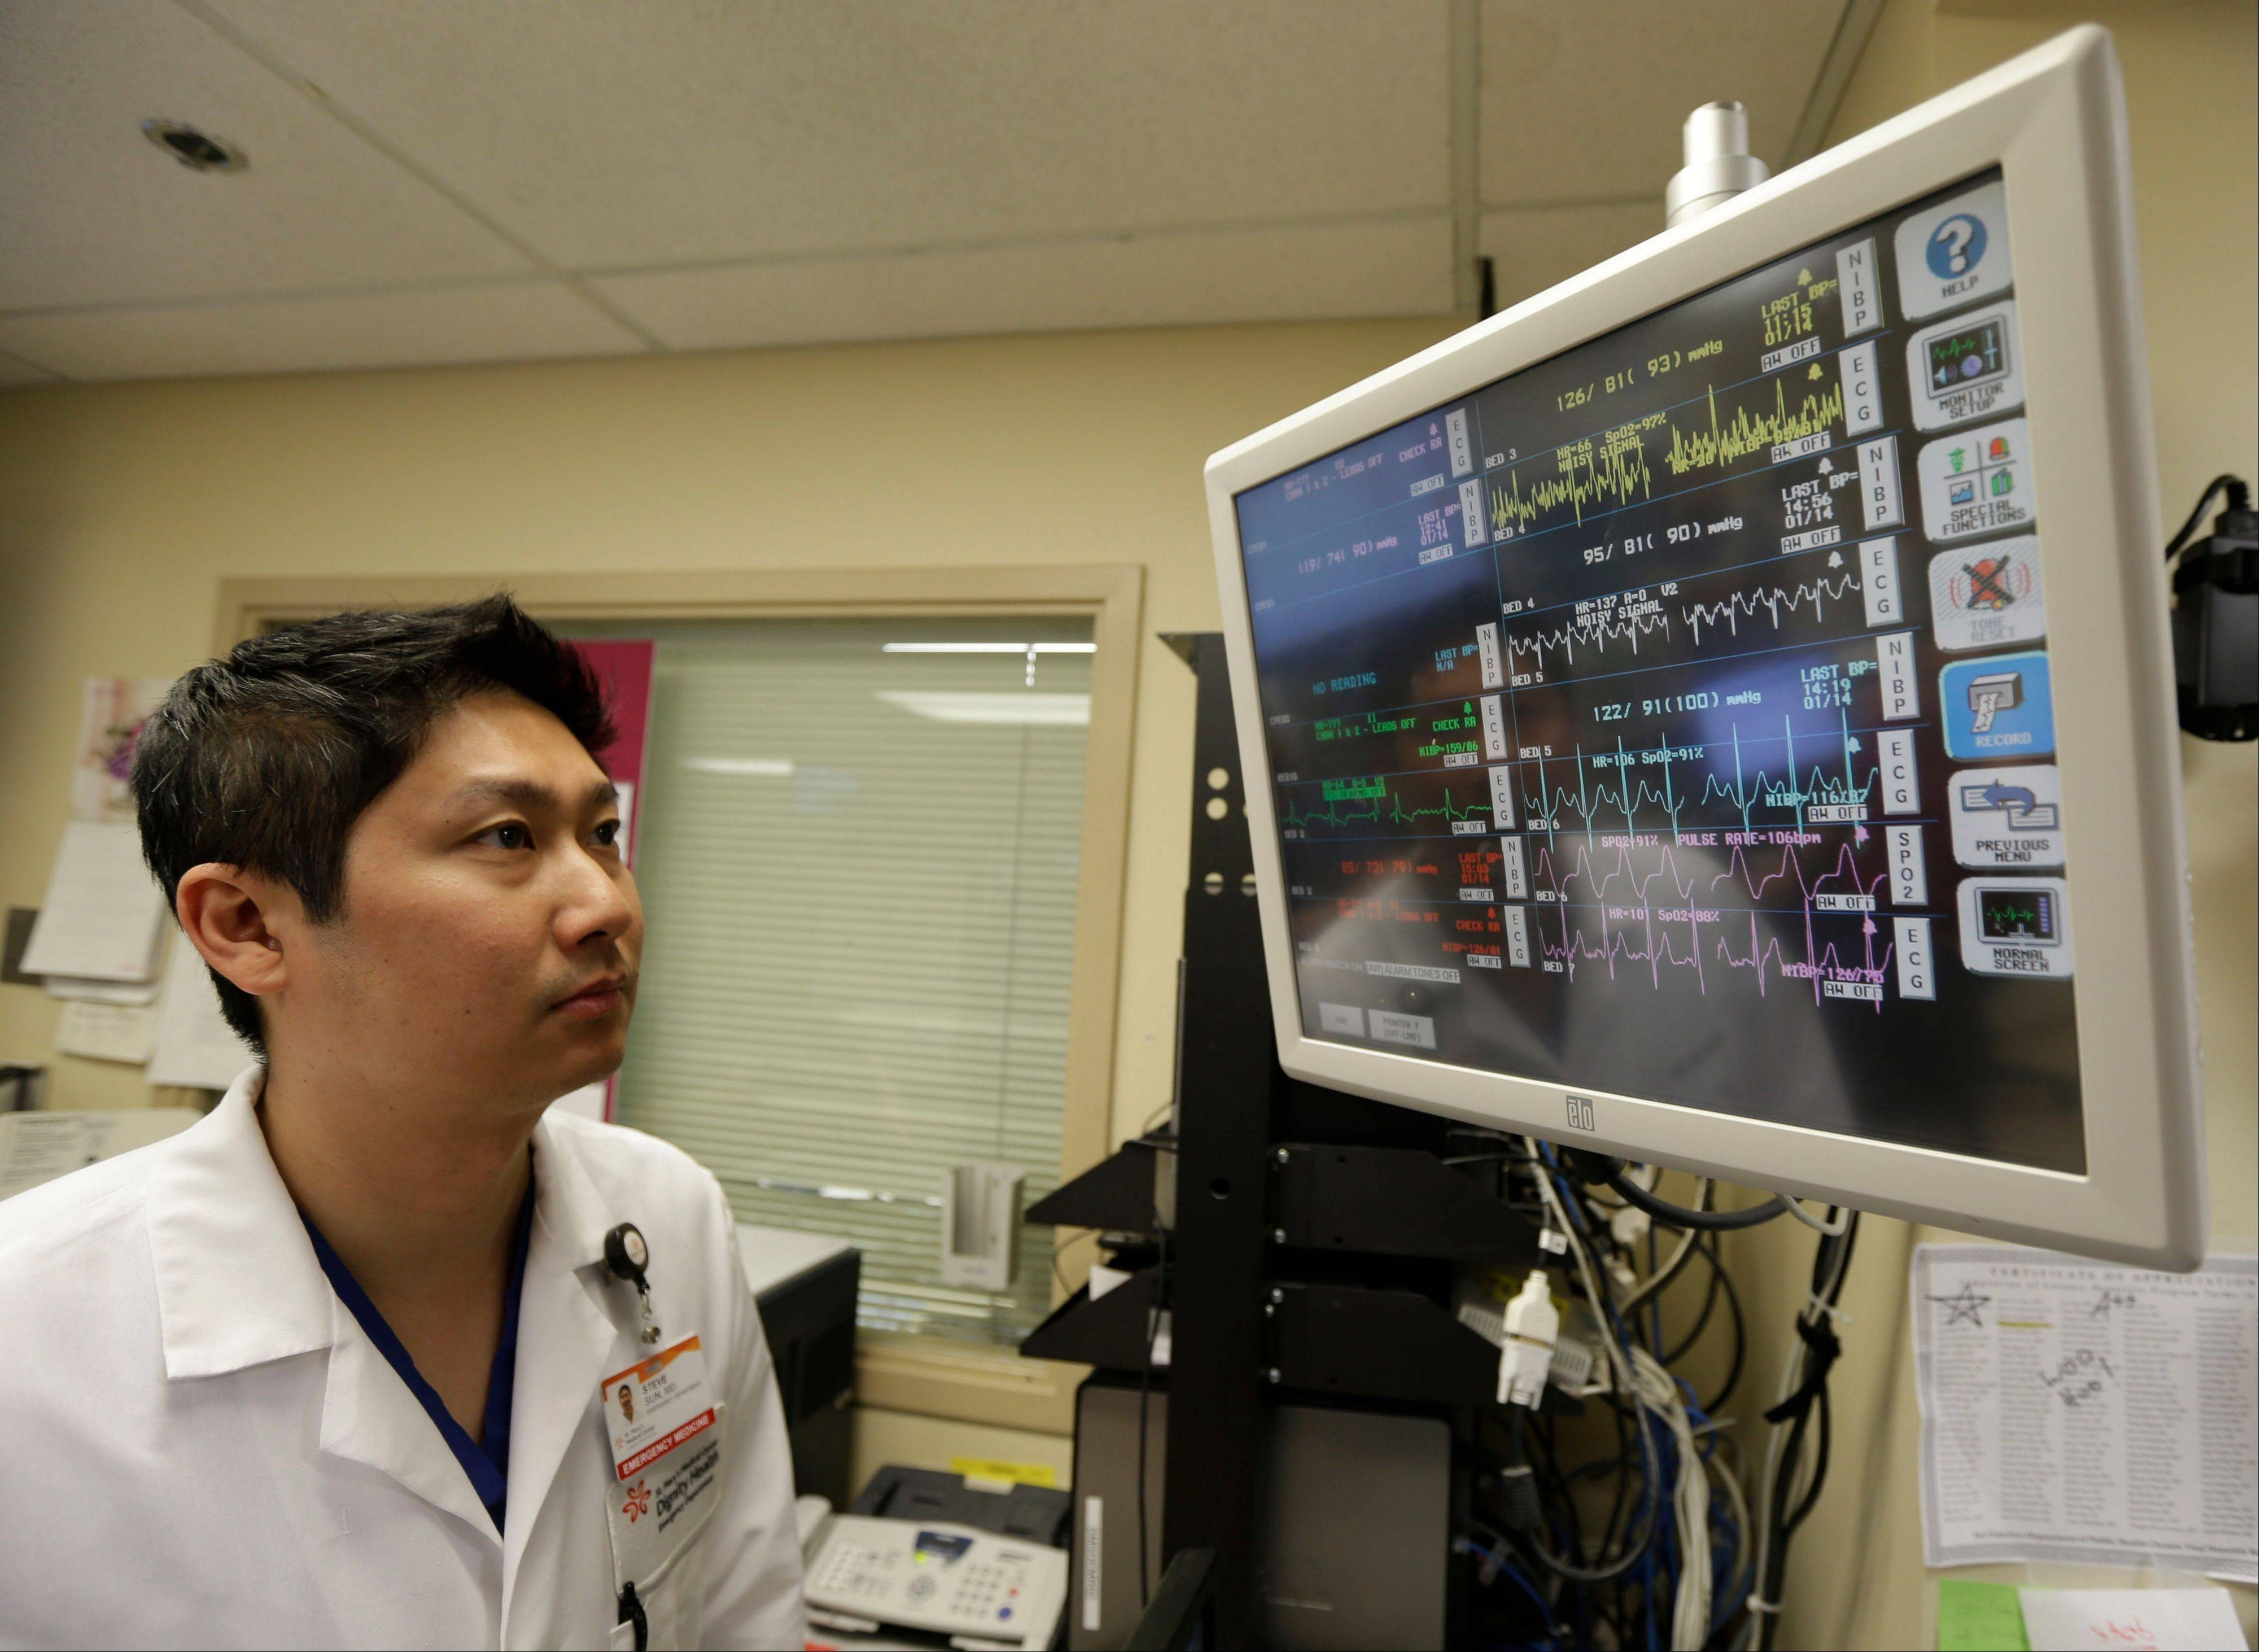 Dr. Steve Sun looks over a heart monitor display in the emergency room at St. Mary�s Medical Center in San Francisco.